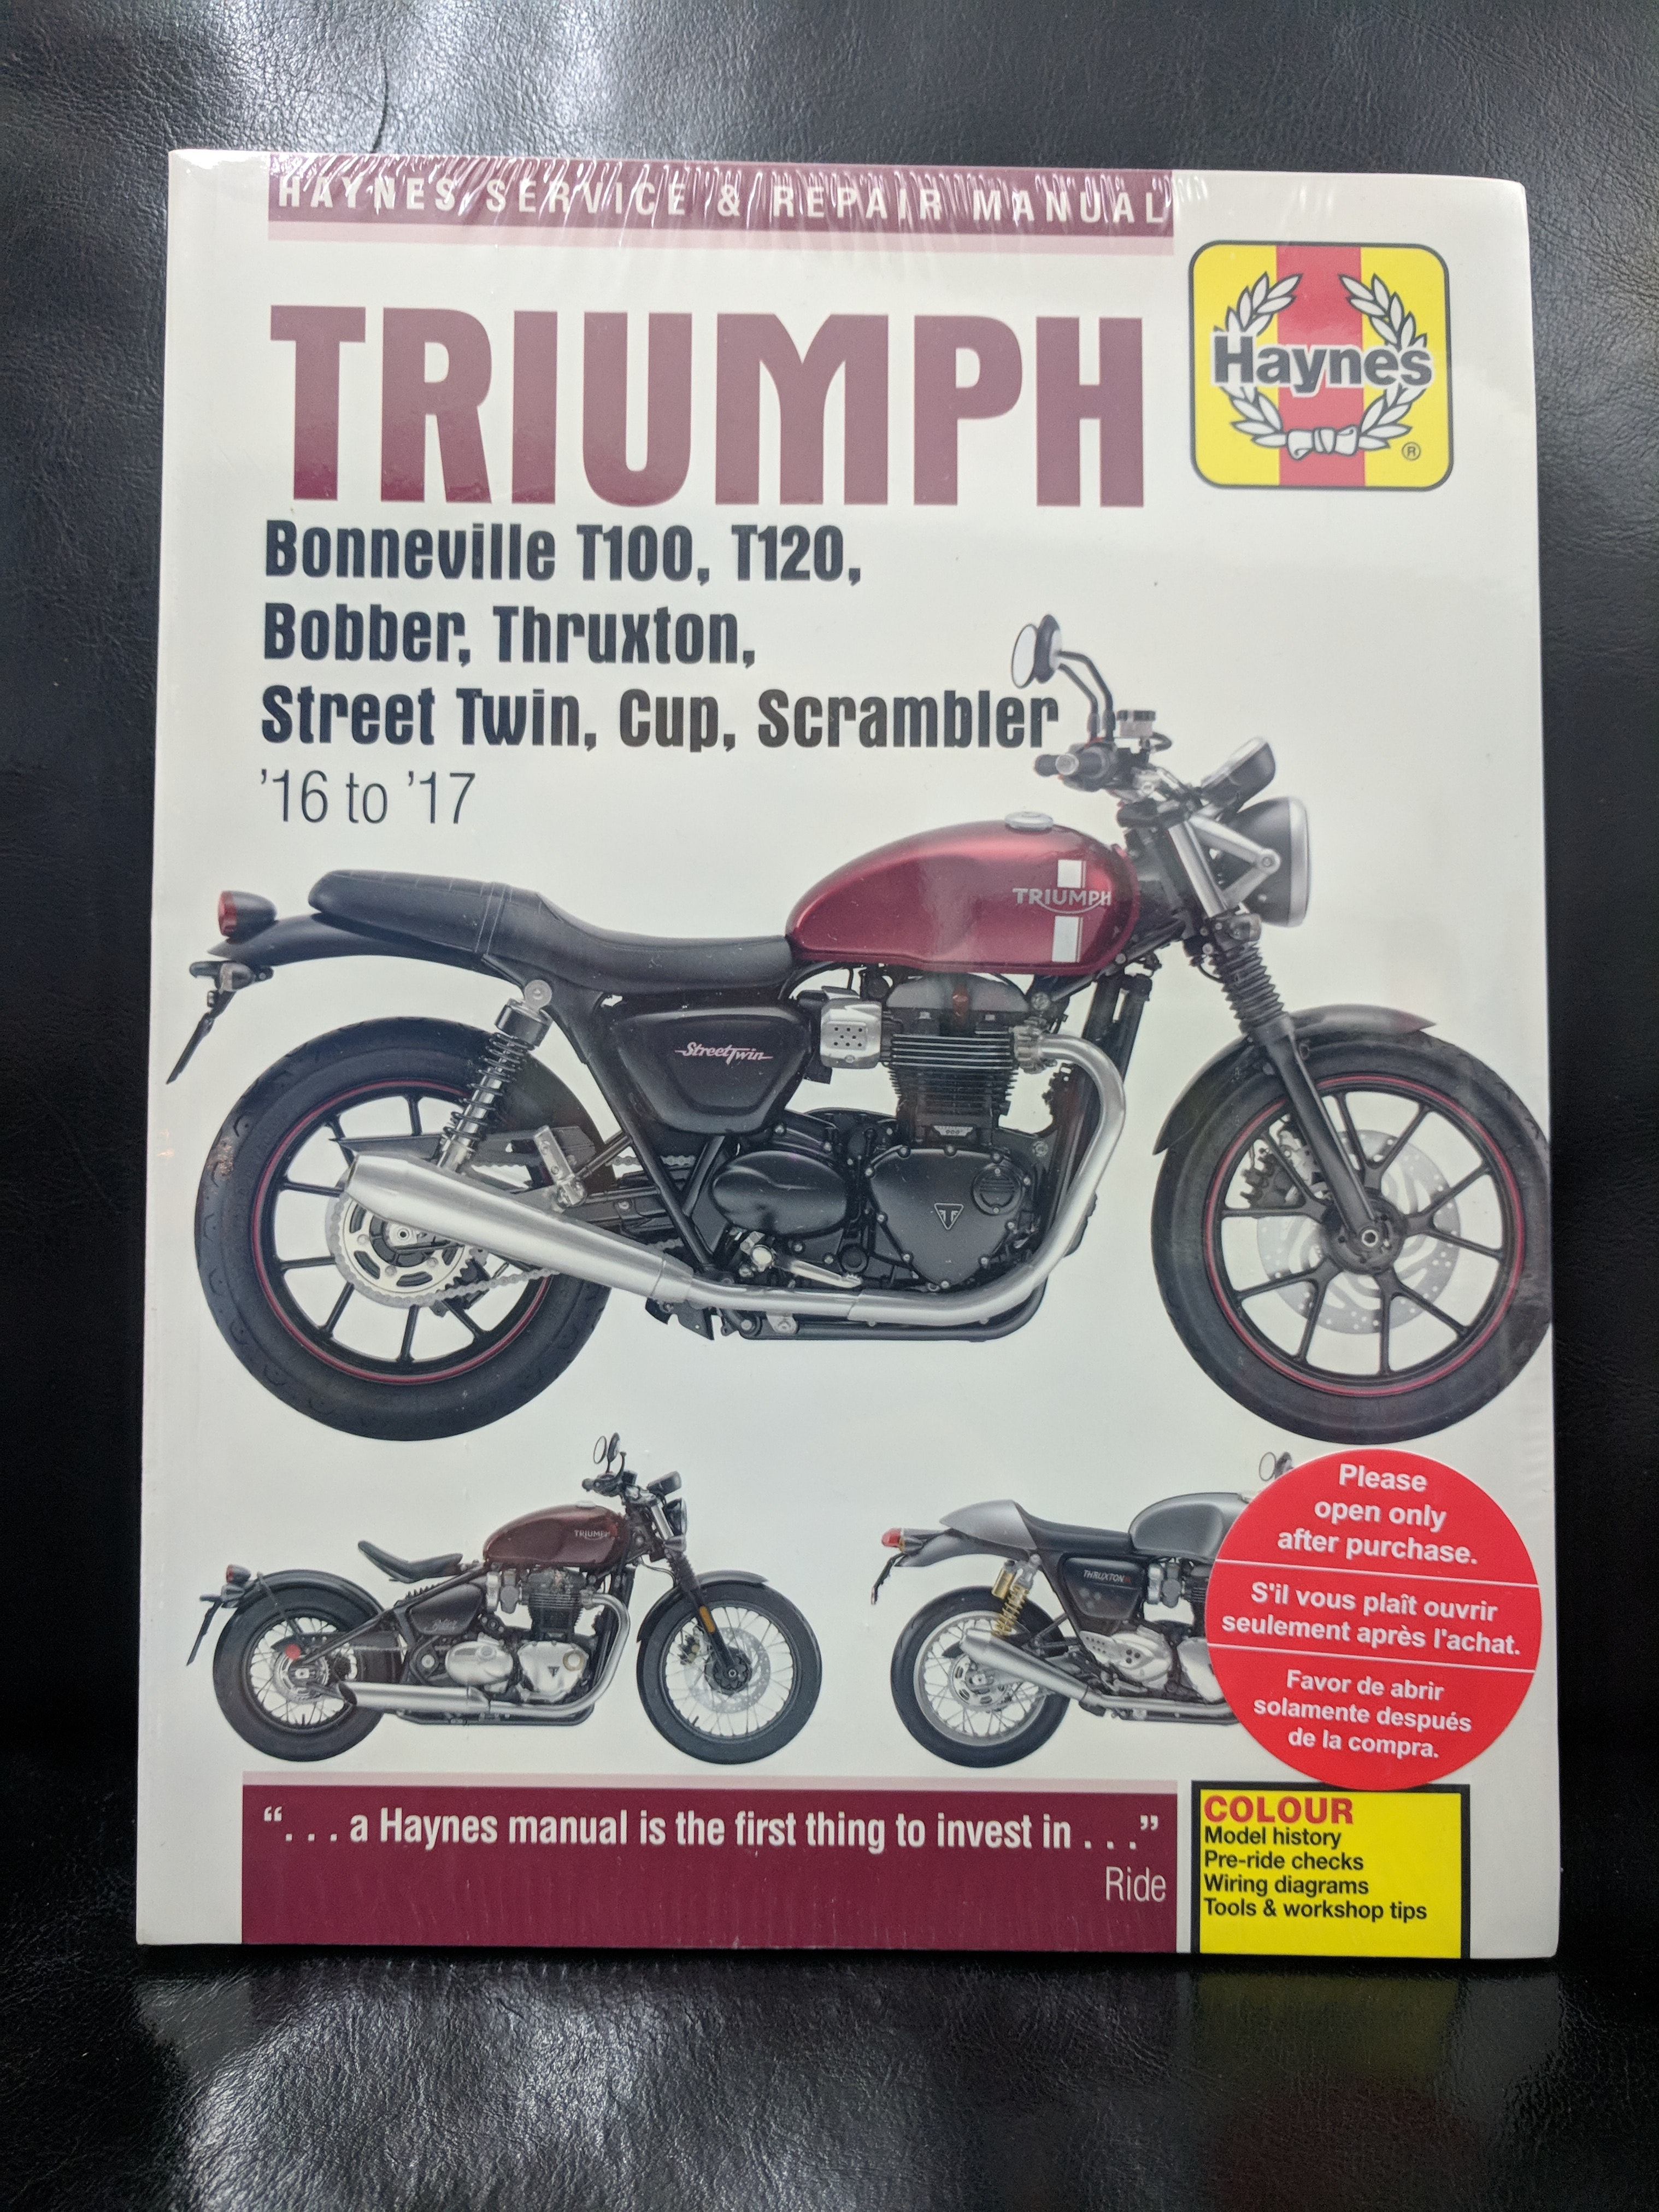 Haynes - Triumph Bonneville T100 manual sweepstakes